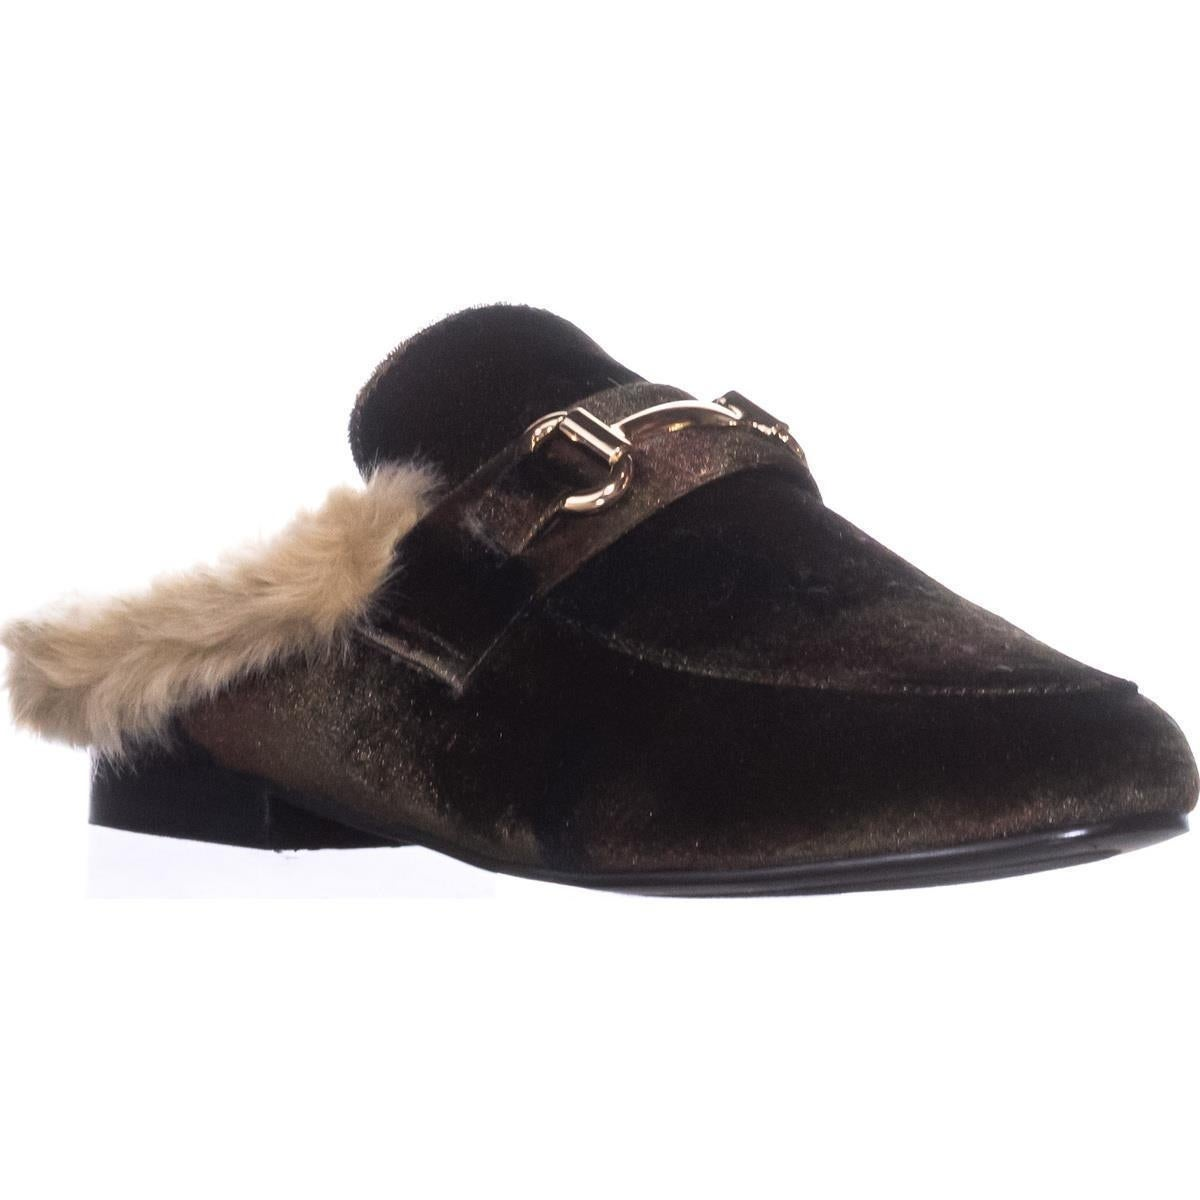 26efeee1b42 Buy Flats Women's Clogs & Mules Online at Overstock | Our Best ...